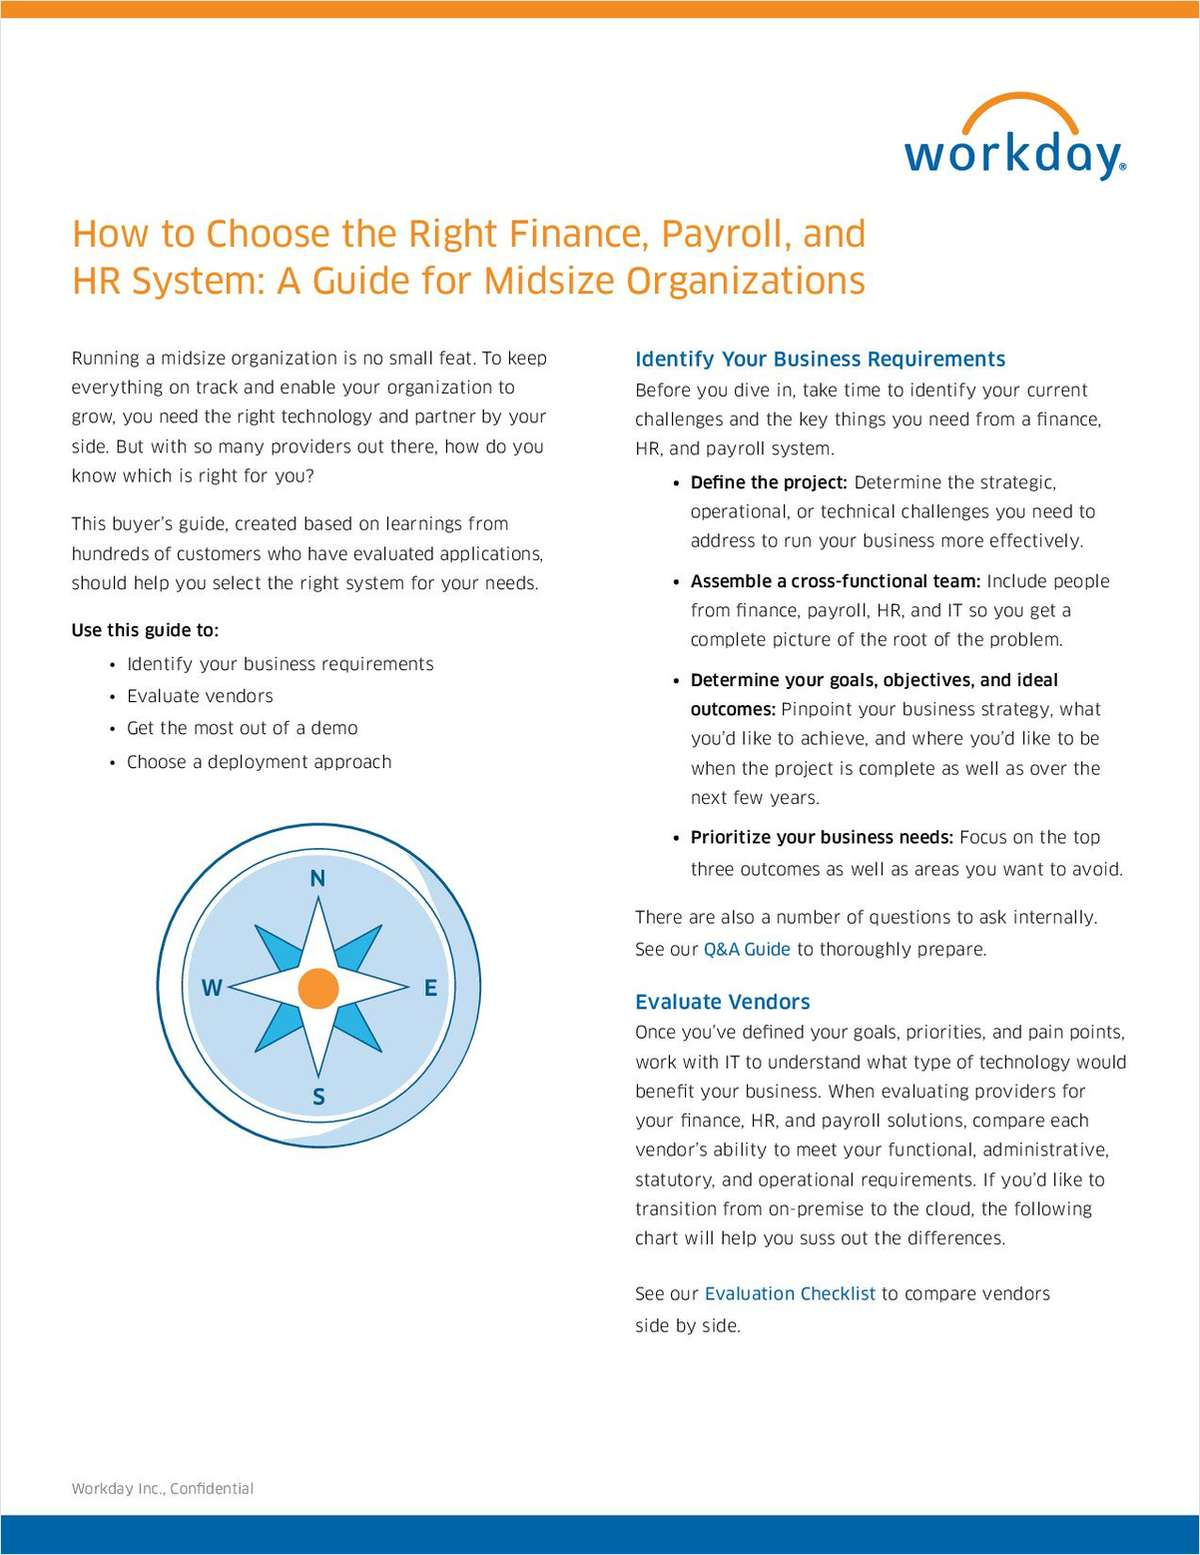 How to Choose the Right Finance, Payroll, and HR System - A Guide for Midsize Organizations